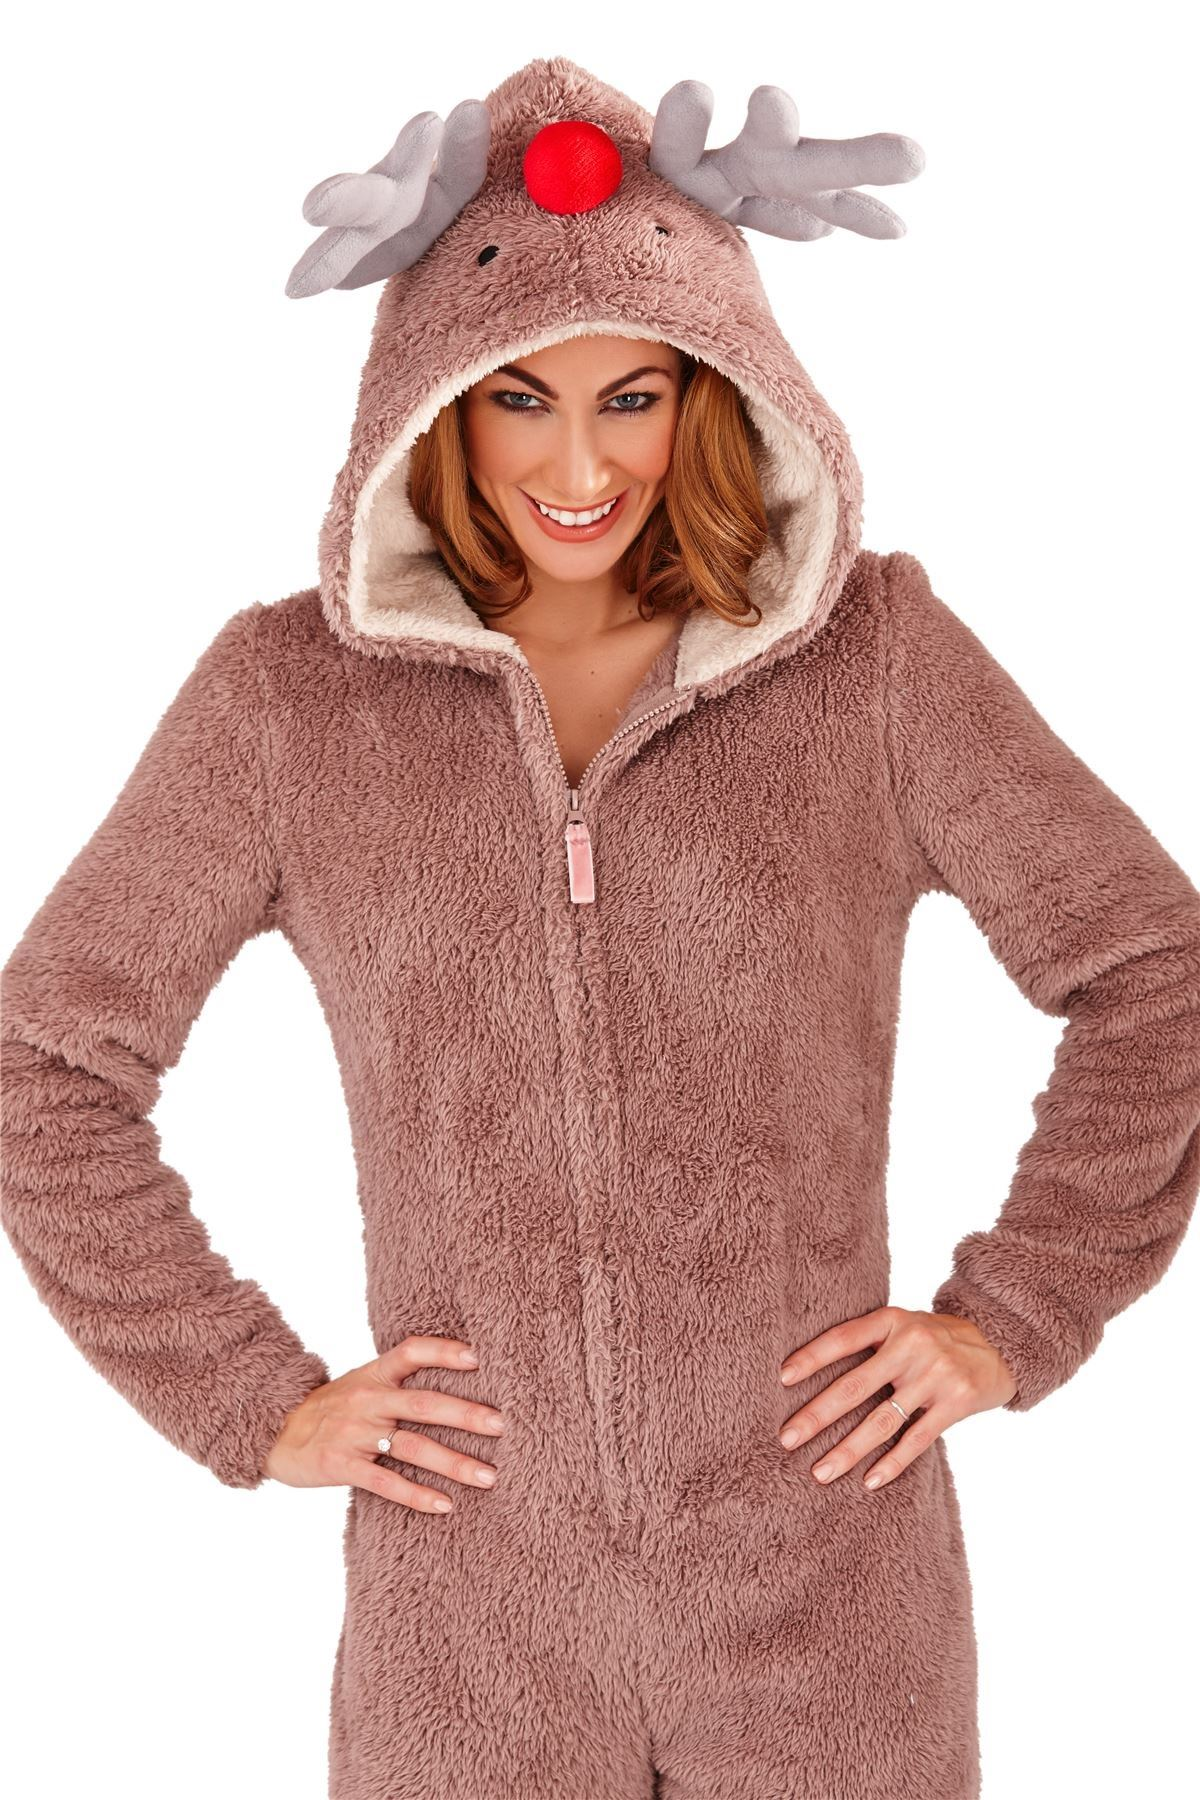 Women's Natural Reindeer Novelty Fluffy Onesie See more TOPSHOP Nightwear. Subscribe to the latest from TOPSHOP. Find on store. Fluffy beige novelty reindeer onesie with antlers and reindeer face embroidery on hood % polyester. Machine washable. Colour: natural Gallery.